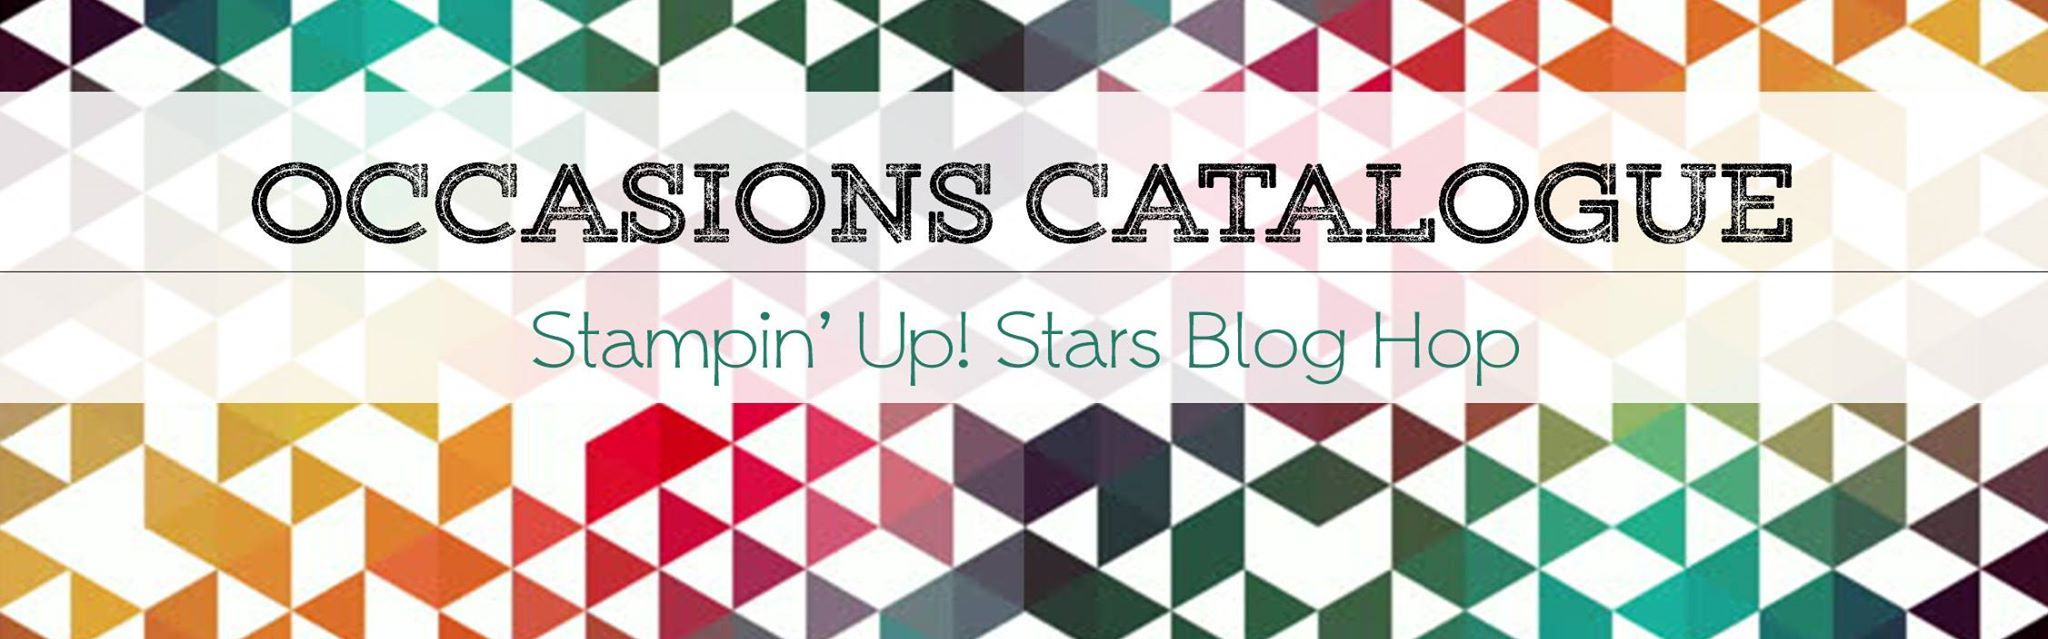 Occasions Catalogue Sneak Peak Blog Hop